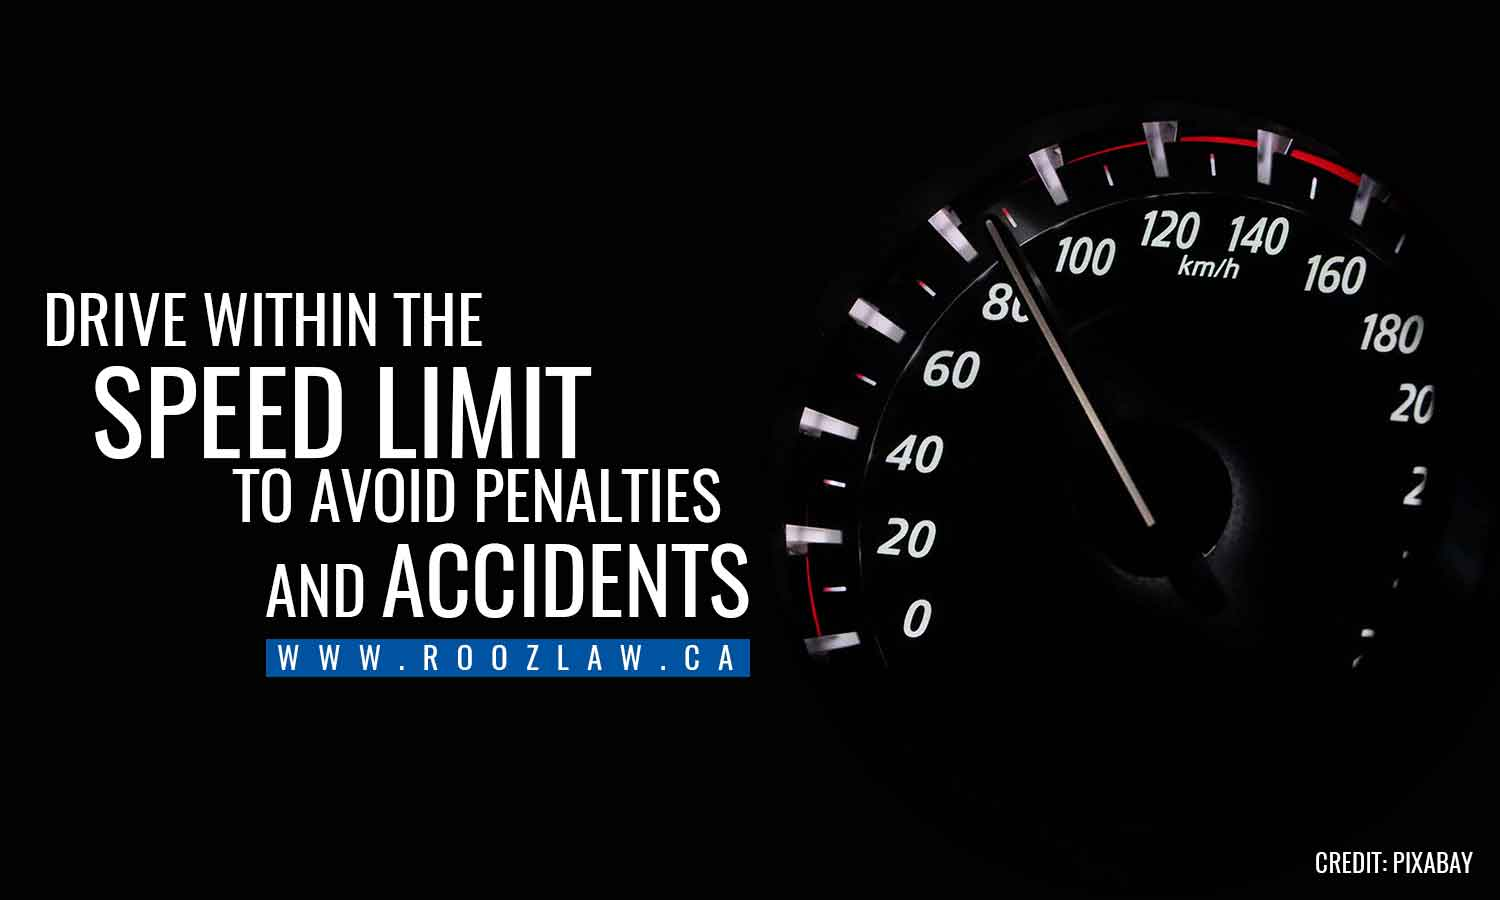 Drive-within-speed-limit-avoid-penalties-accidents